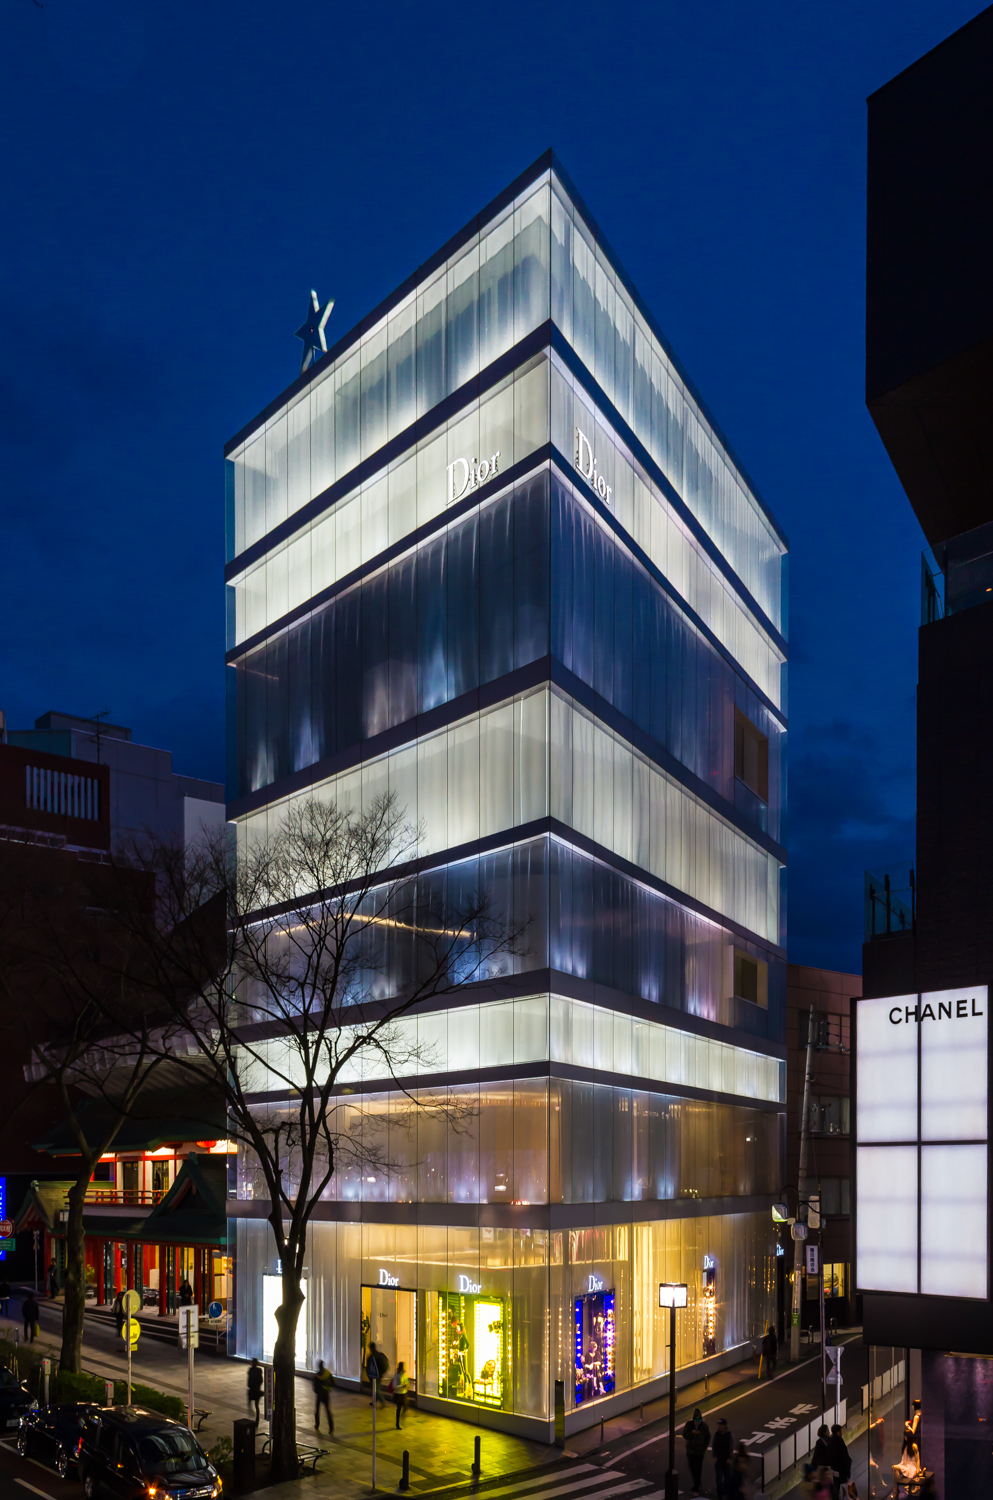 Image Source: http://upload.wikimedia.org/wikipedia/commons/a/ac/Christian_Dior_Omotesando_Tokyo.JPG